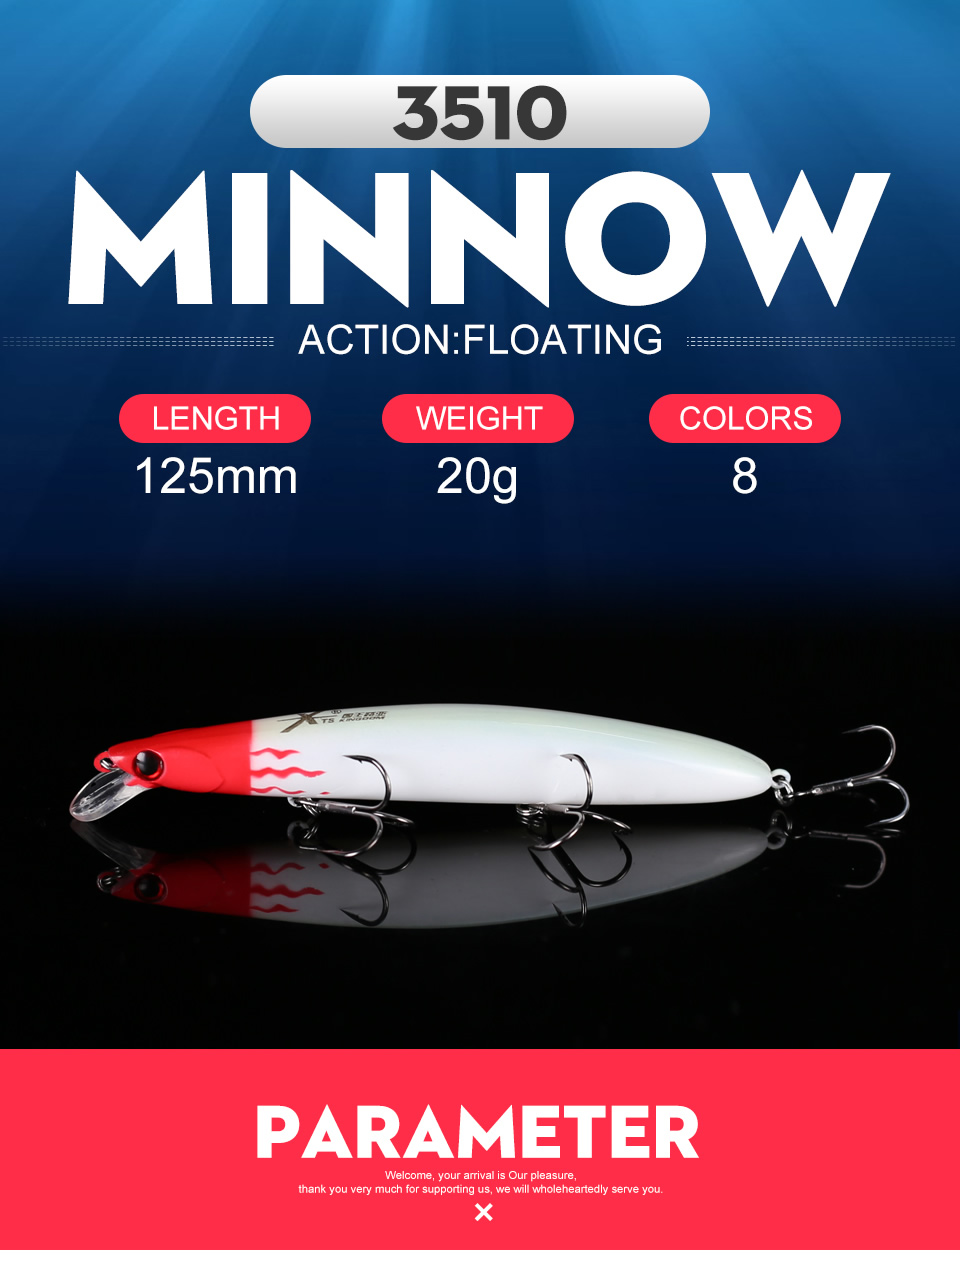 Kingdom 2019 Professional Floating JERKBAIT Fishing Lures 125mm 20g Wobblers Minnow Hard Baits Depth 0.2-0.4m Bass Pike Bait Lure (1)